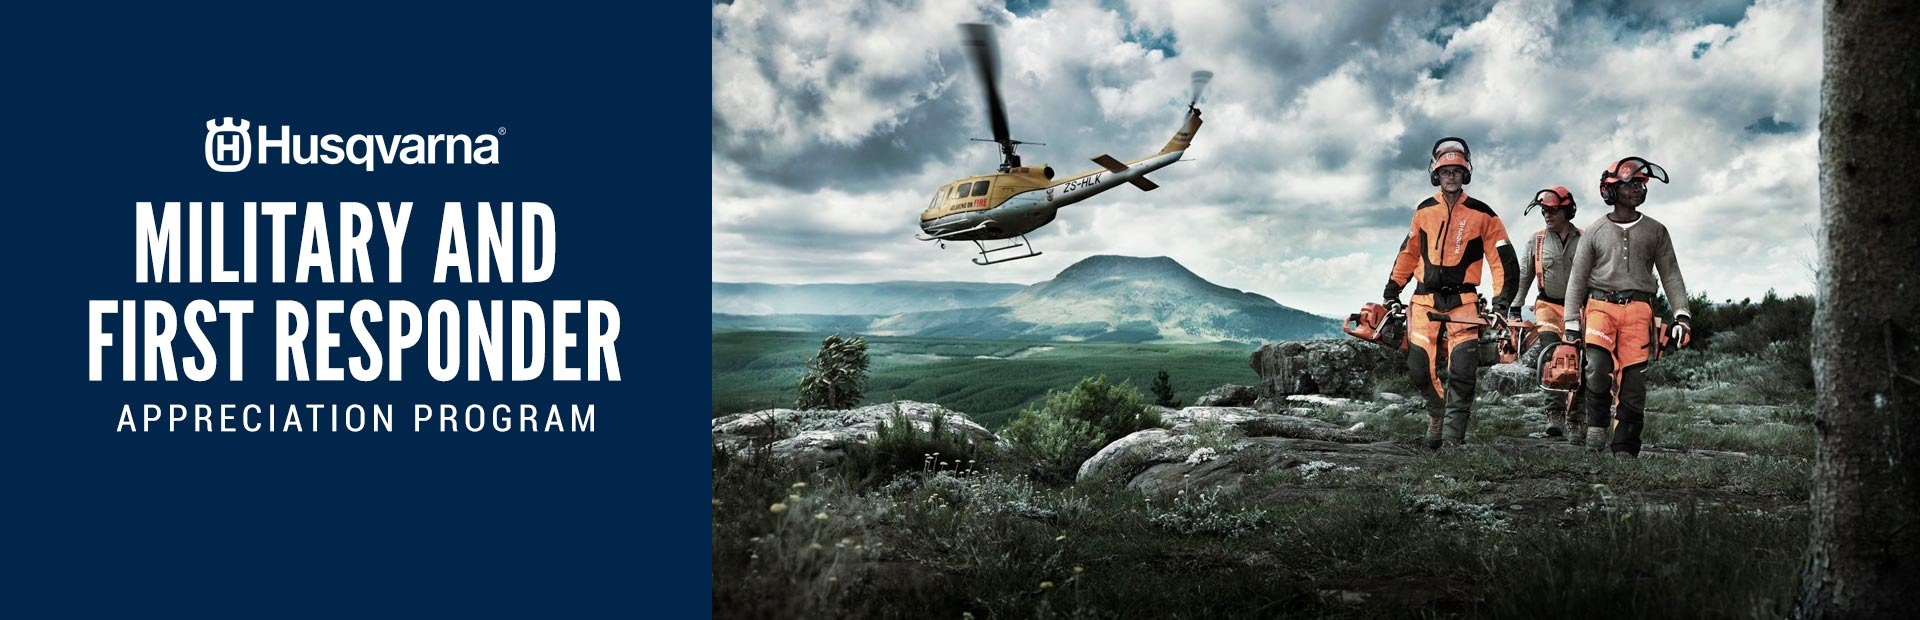 Husqvarna: Military and First Responder Appreciation Program